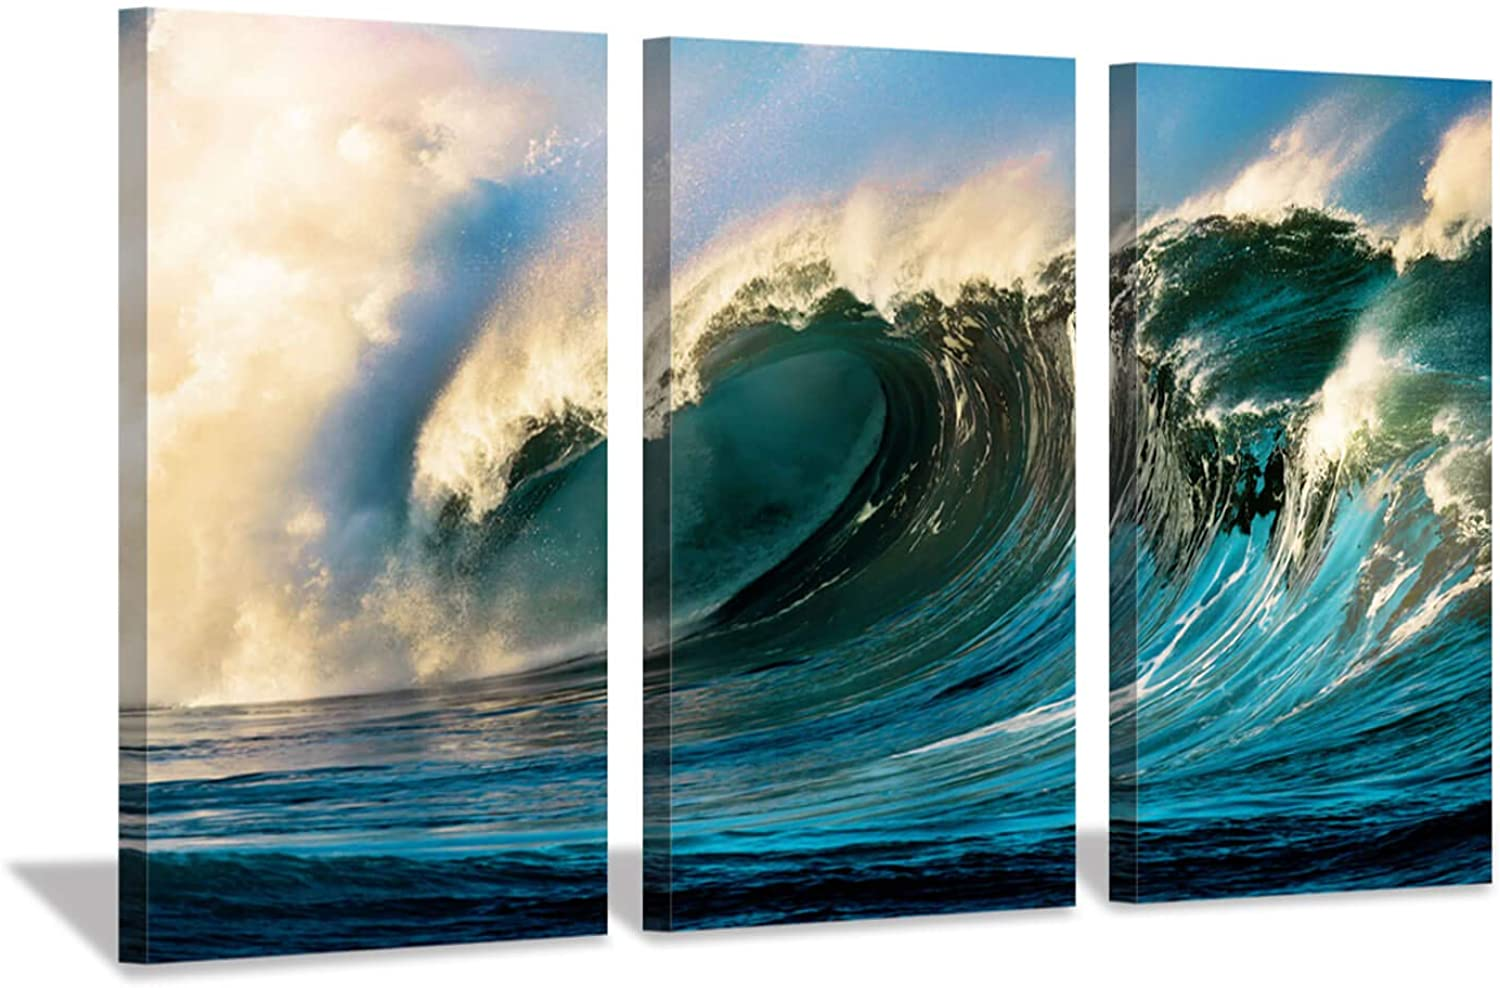 Ocean Wave Pictures Wall Decor  Navy bluee Waves Sunset Seascape Artwork Print on Canvas Wall Art Living Rooms Office (16 x26 x3pcs)